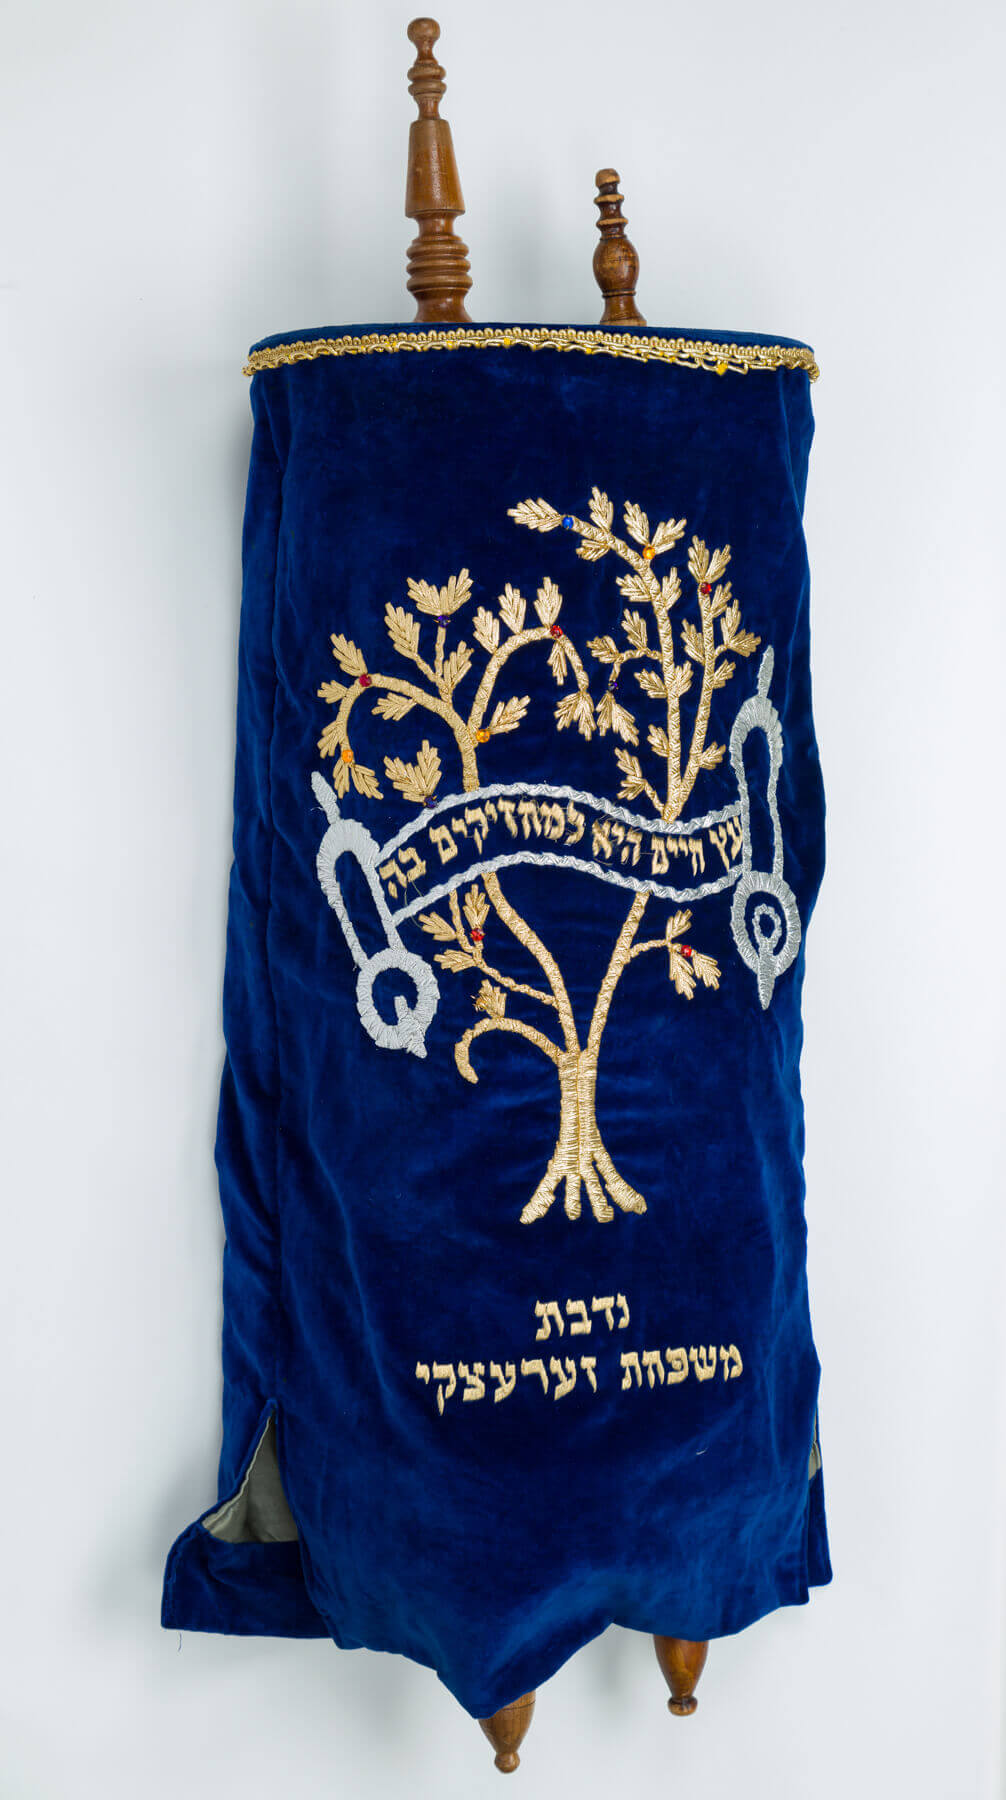 041. A LARGE SEFER TORAH